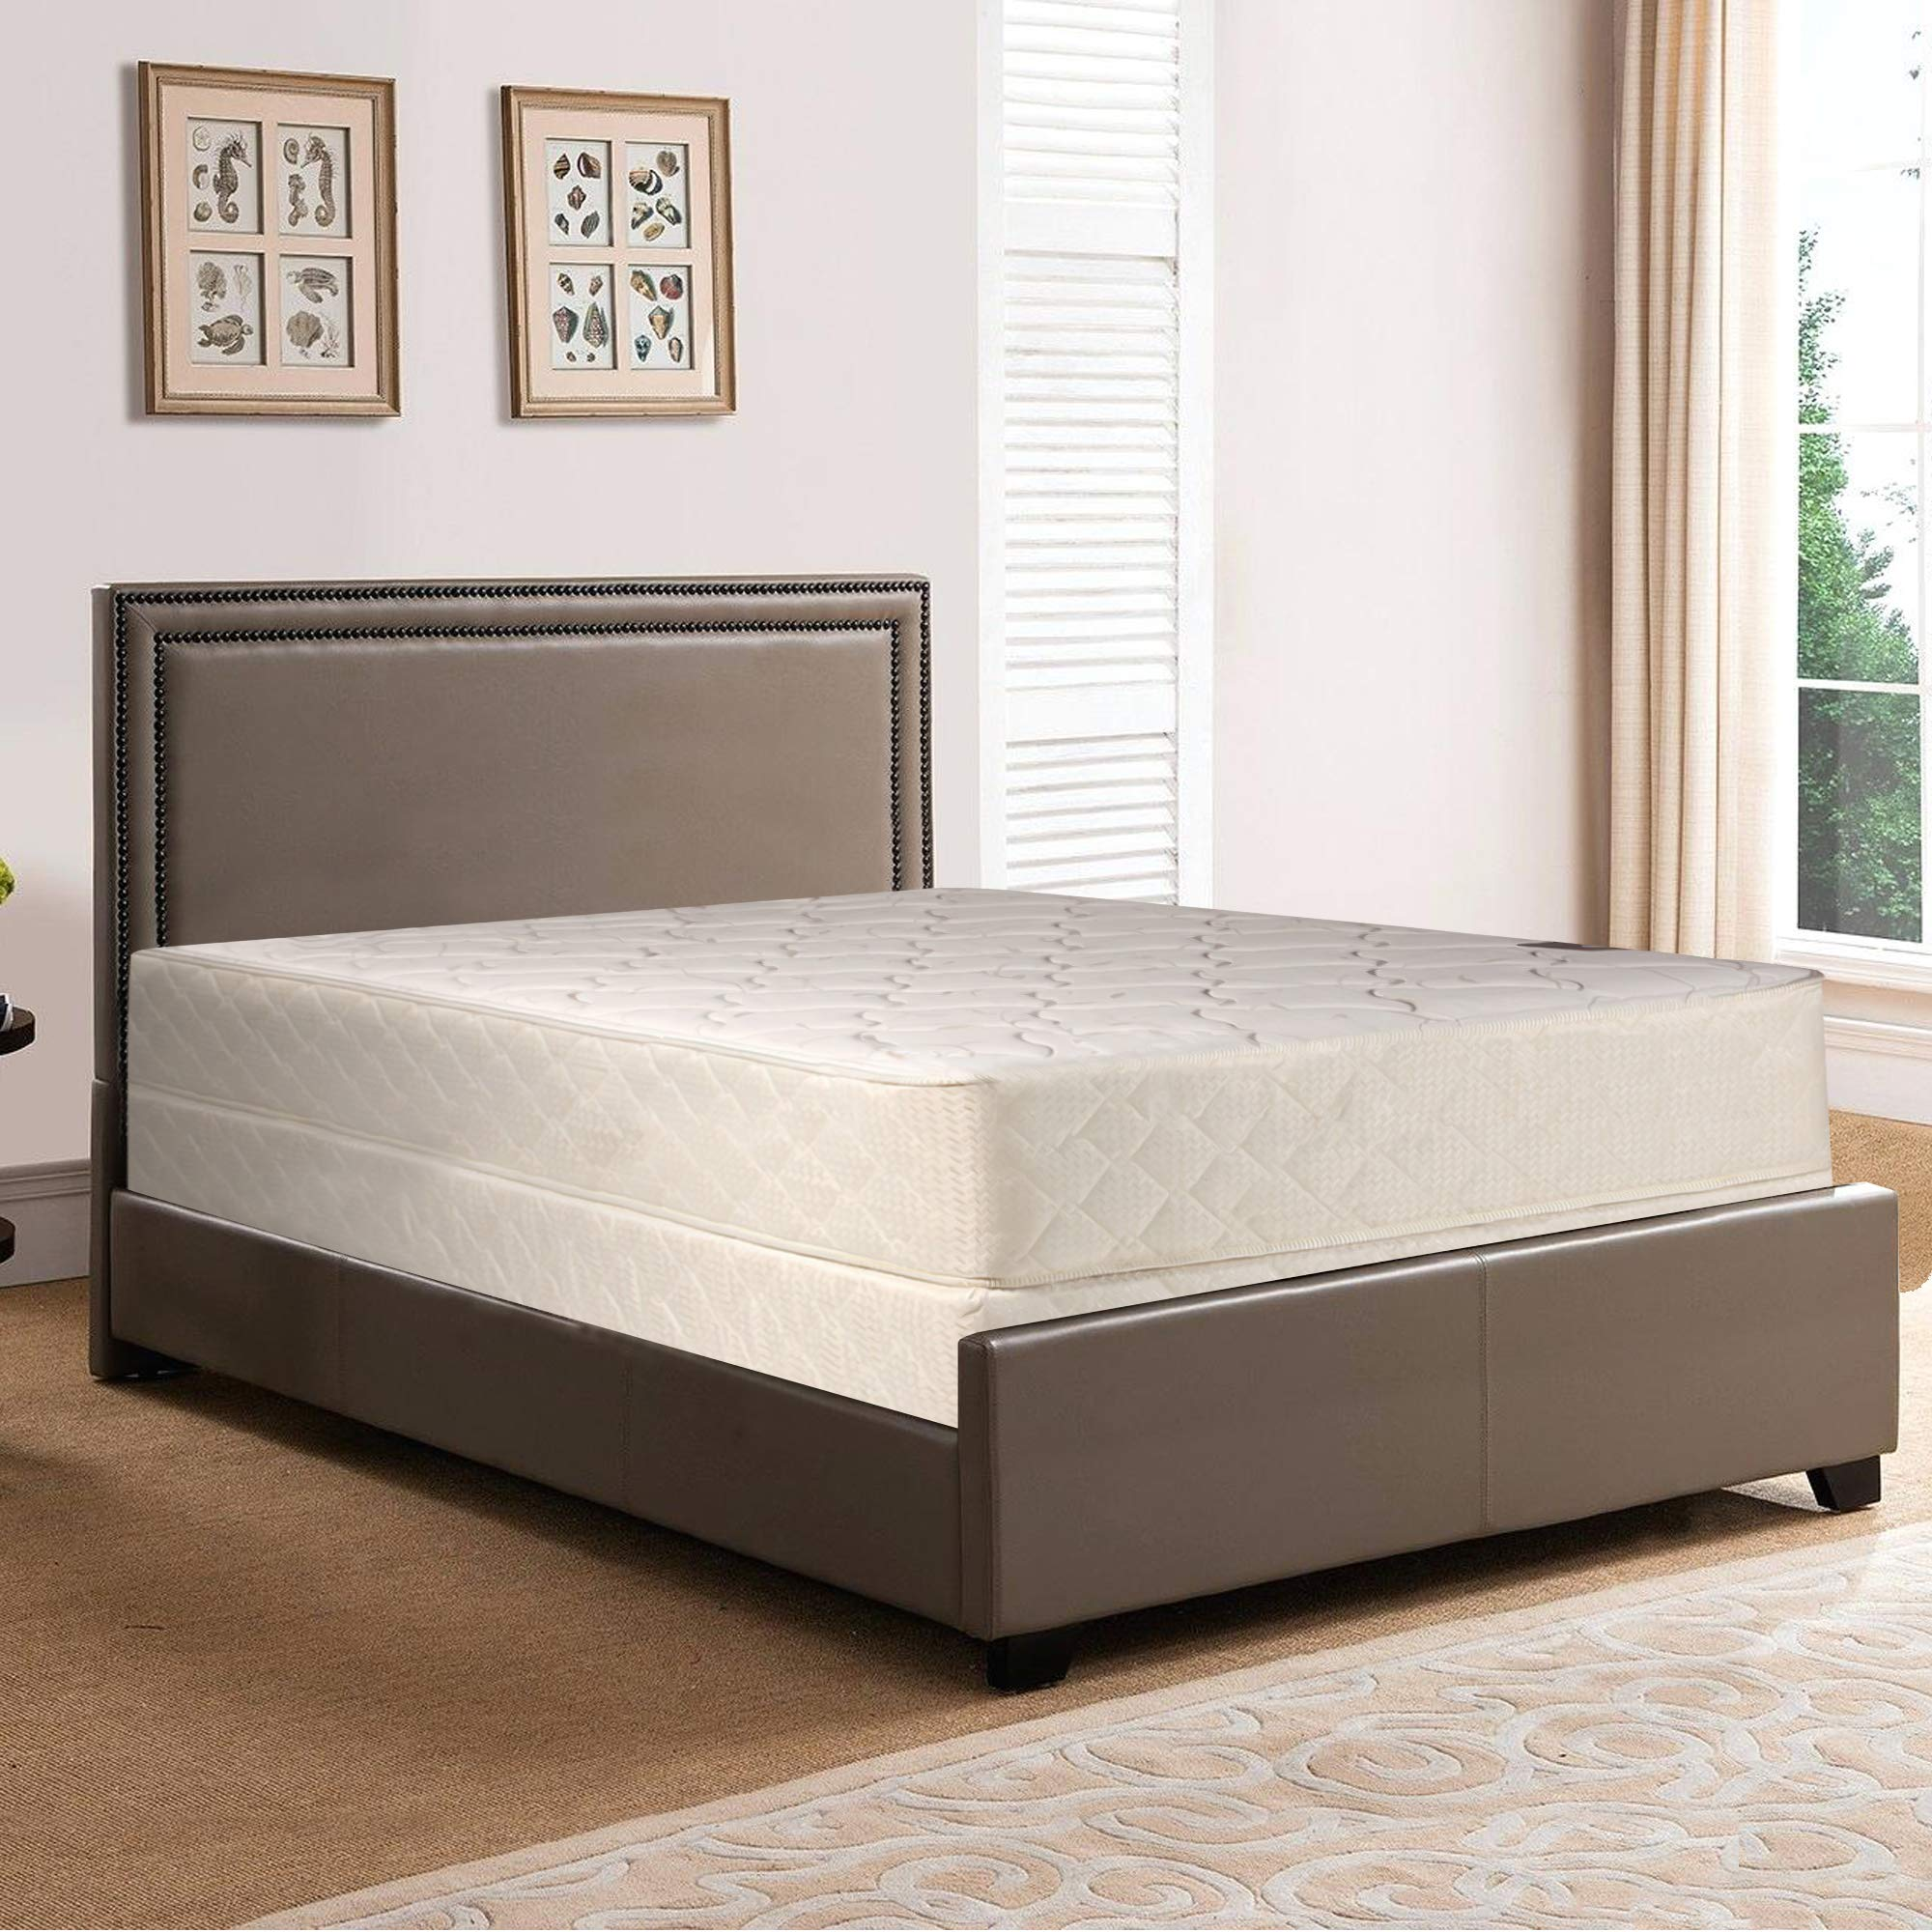 Fully Assembled Orthopedic Back Support Long Lasting 10'' Mattress and Box Spring Set by Spring Solution